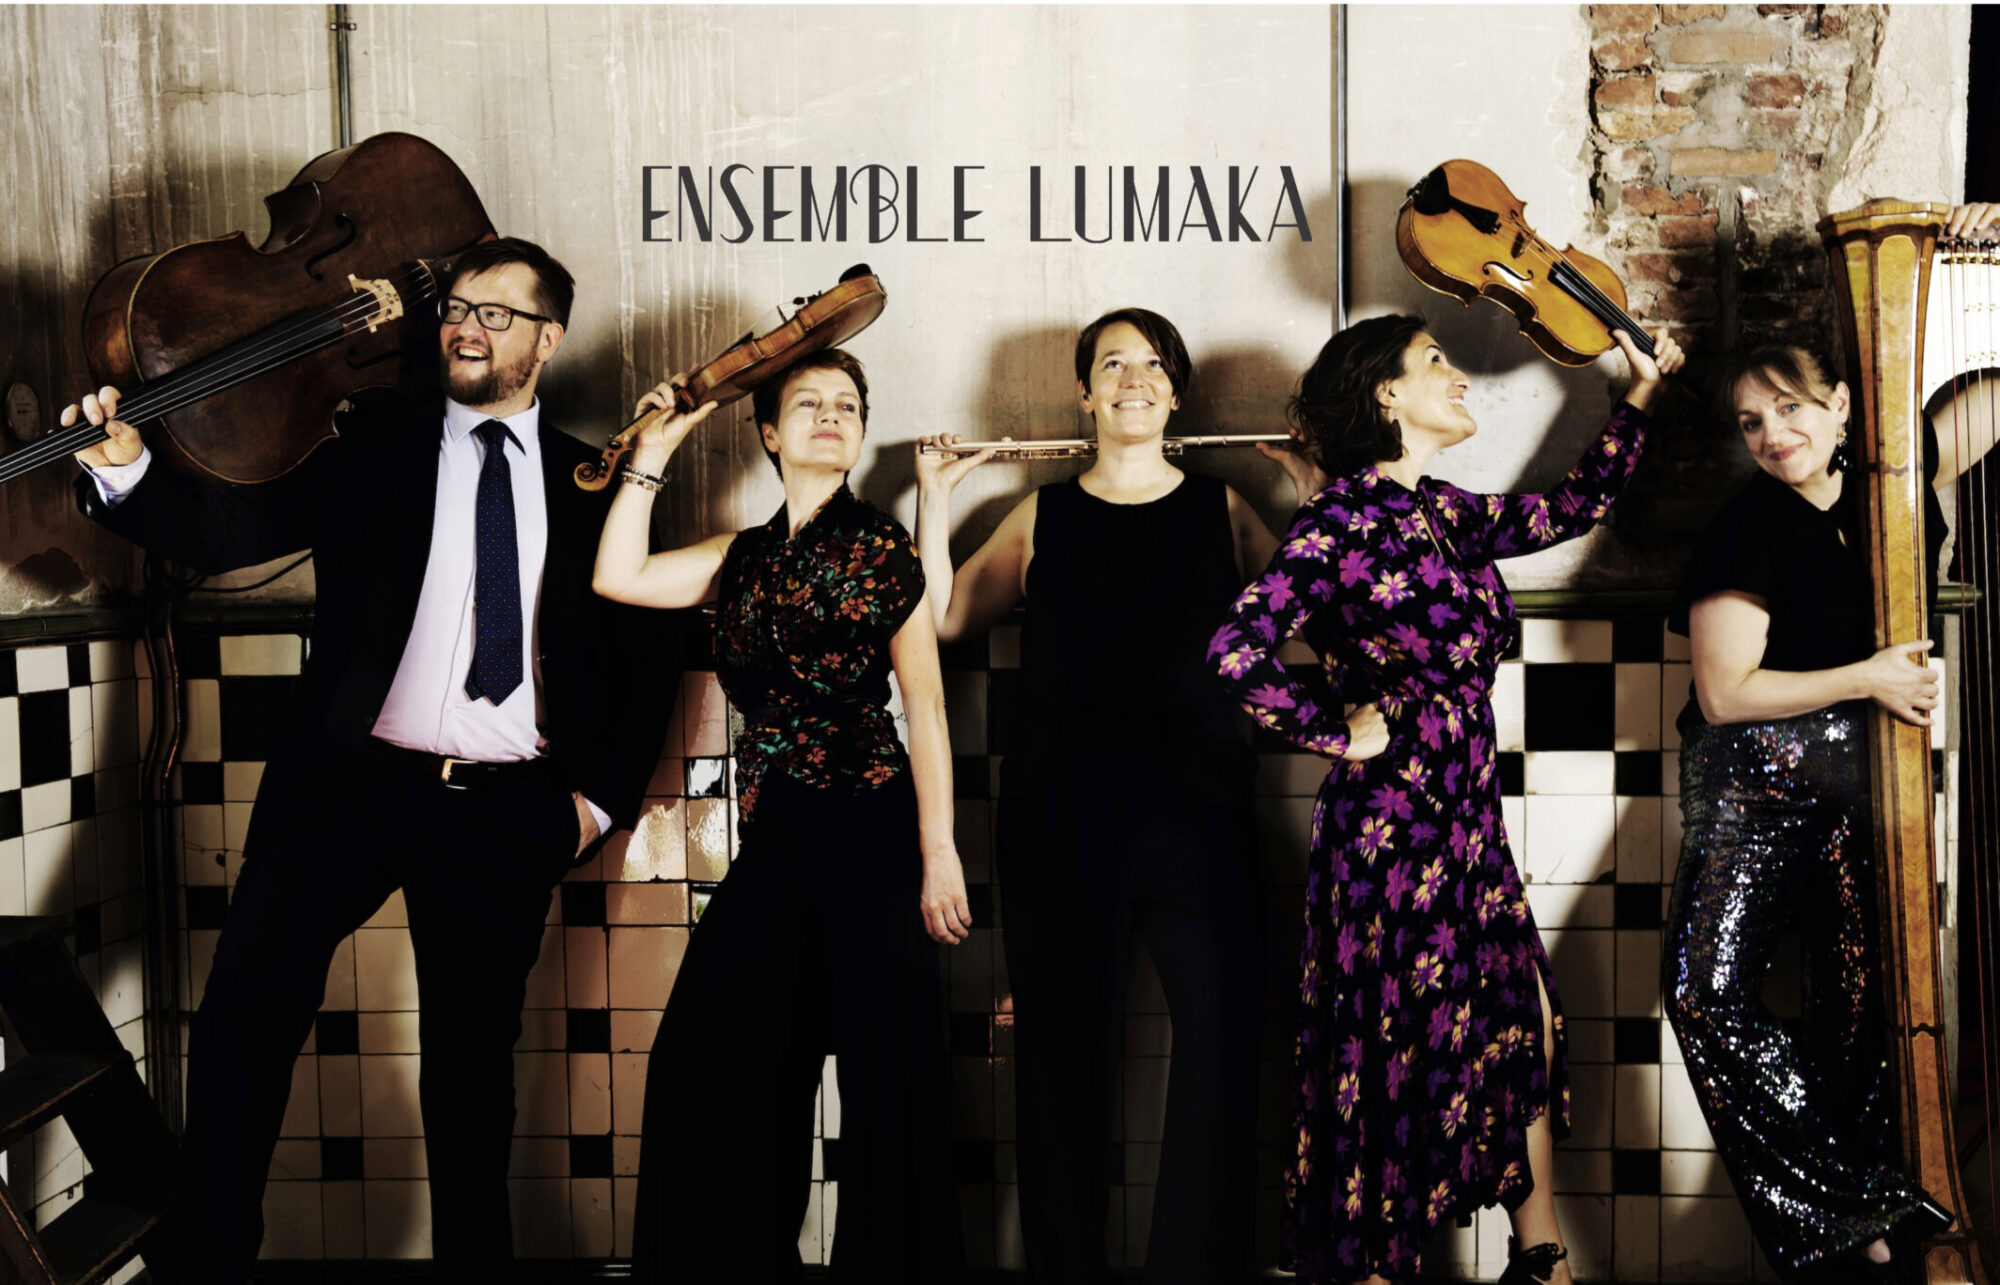 Ensemble Lumaka